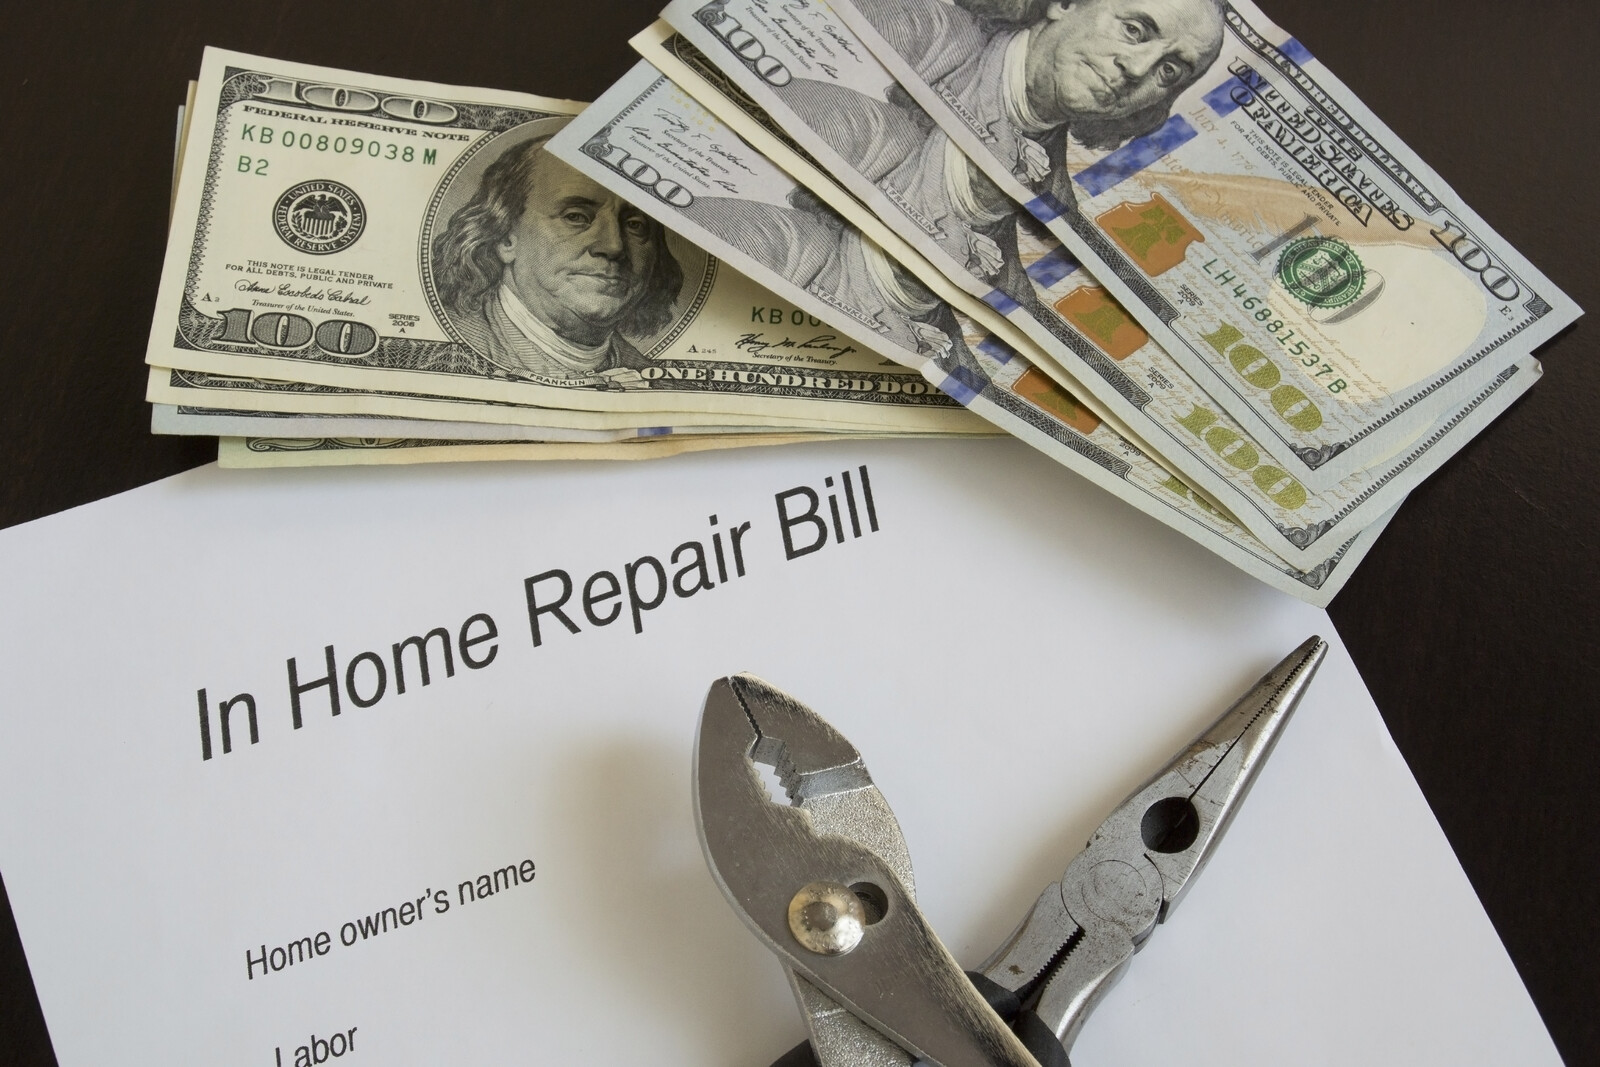 In Home Repair Bill with two pairs of pliers crosssed on top and near the top of the paper there are multiple 100 dollar bills